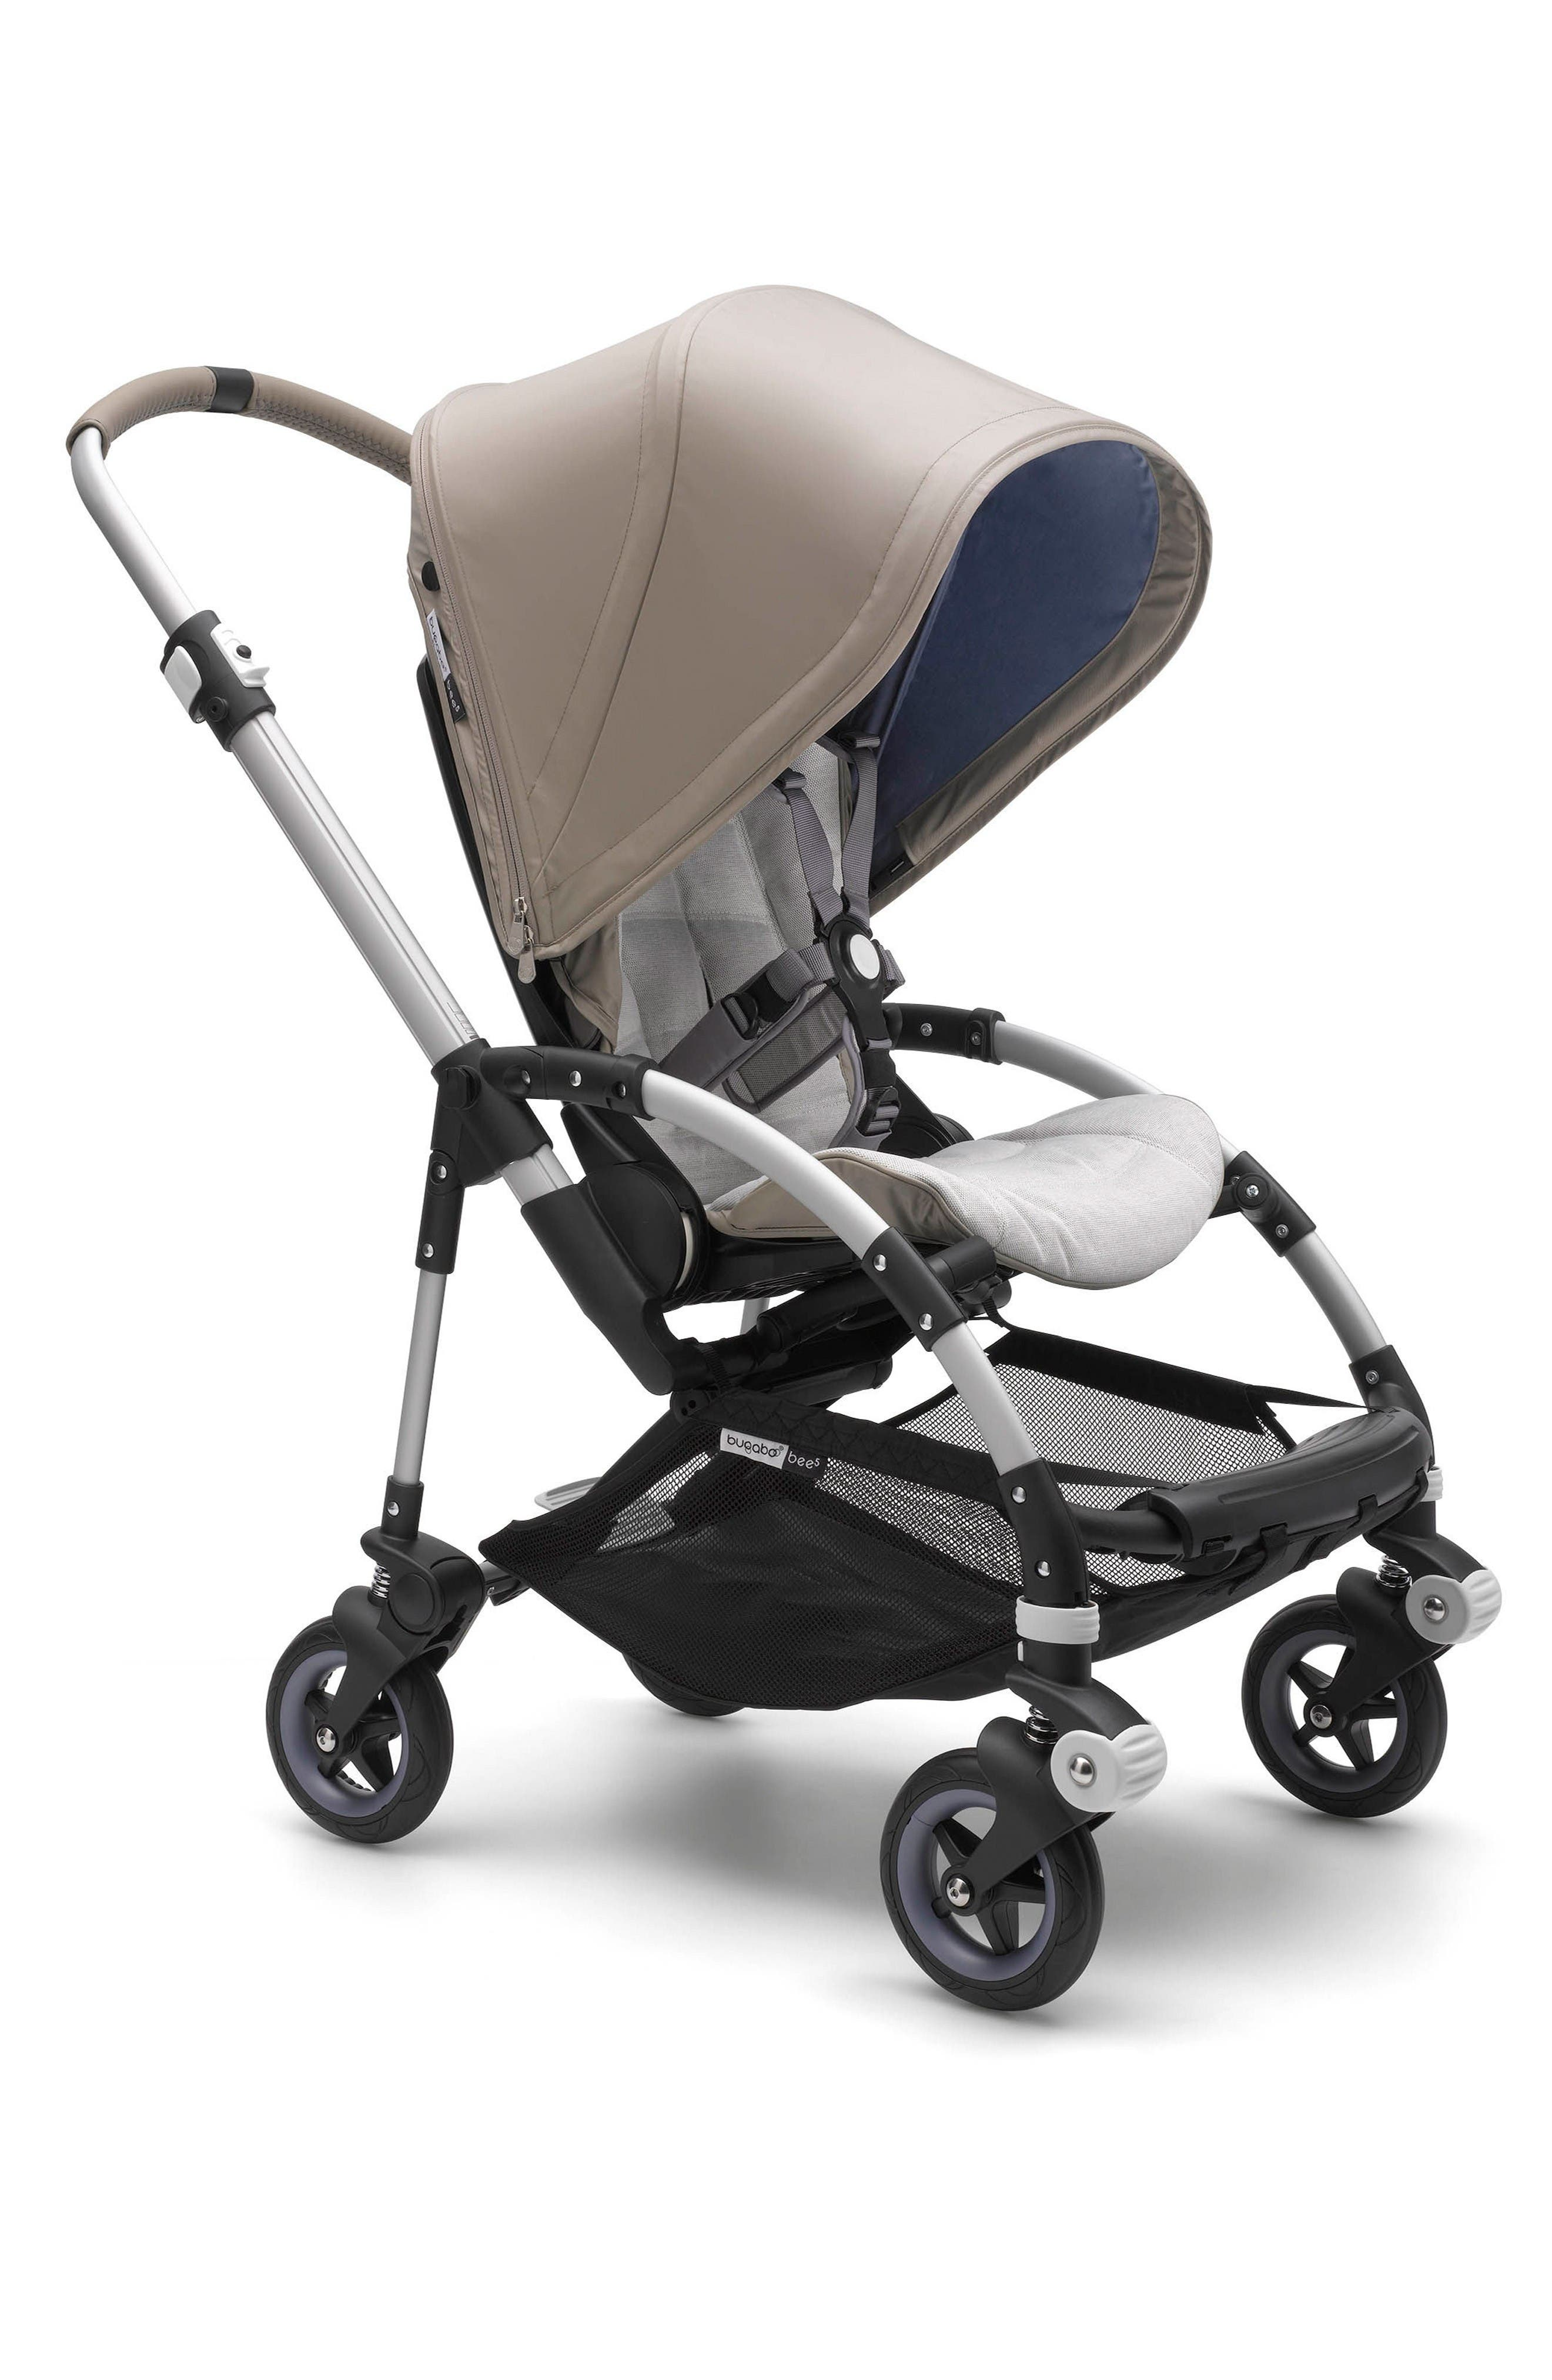 Bugaboo Bee5 Two-Tone Taupe Limited Edition Stroller with Lavender Accents